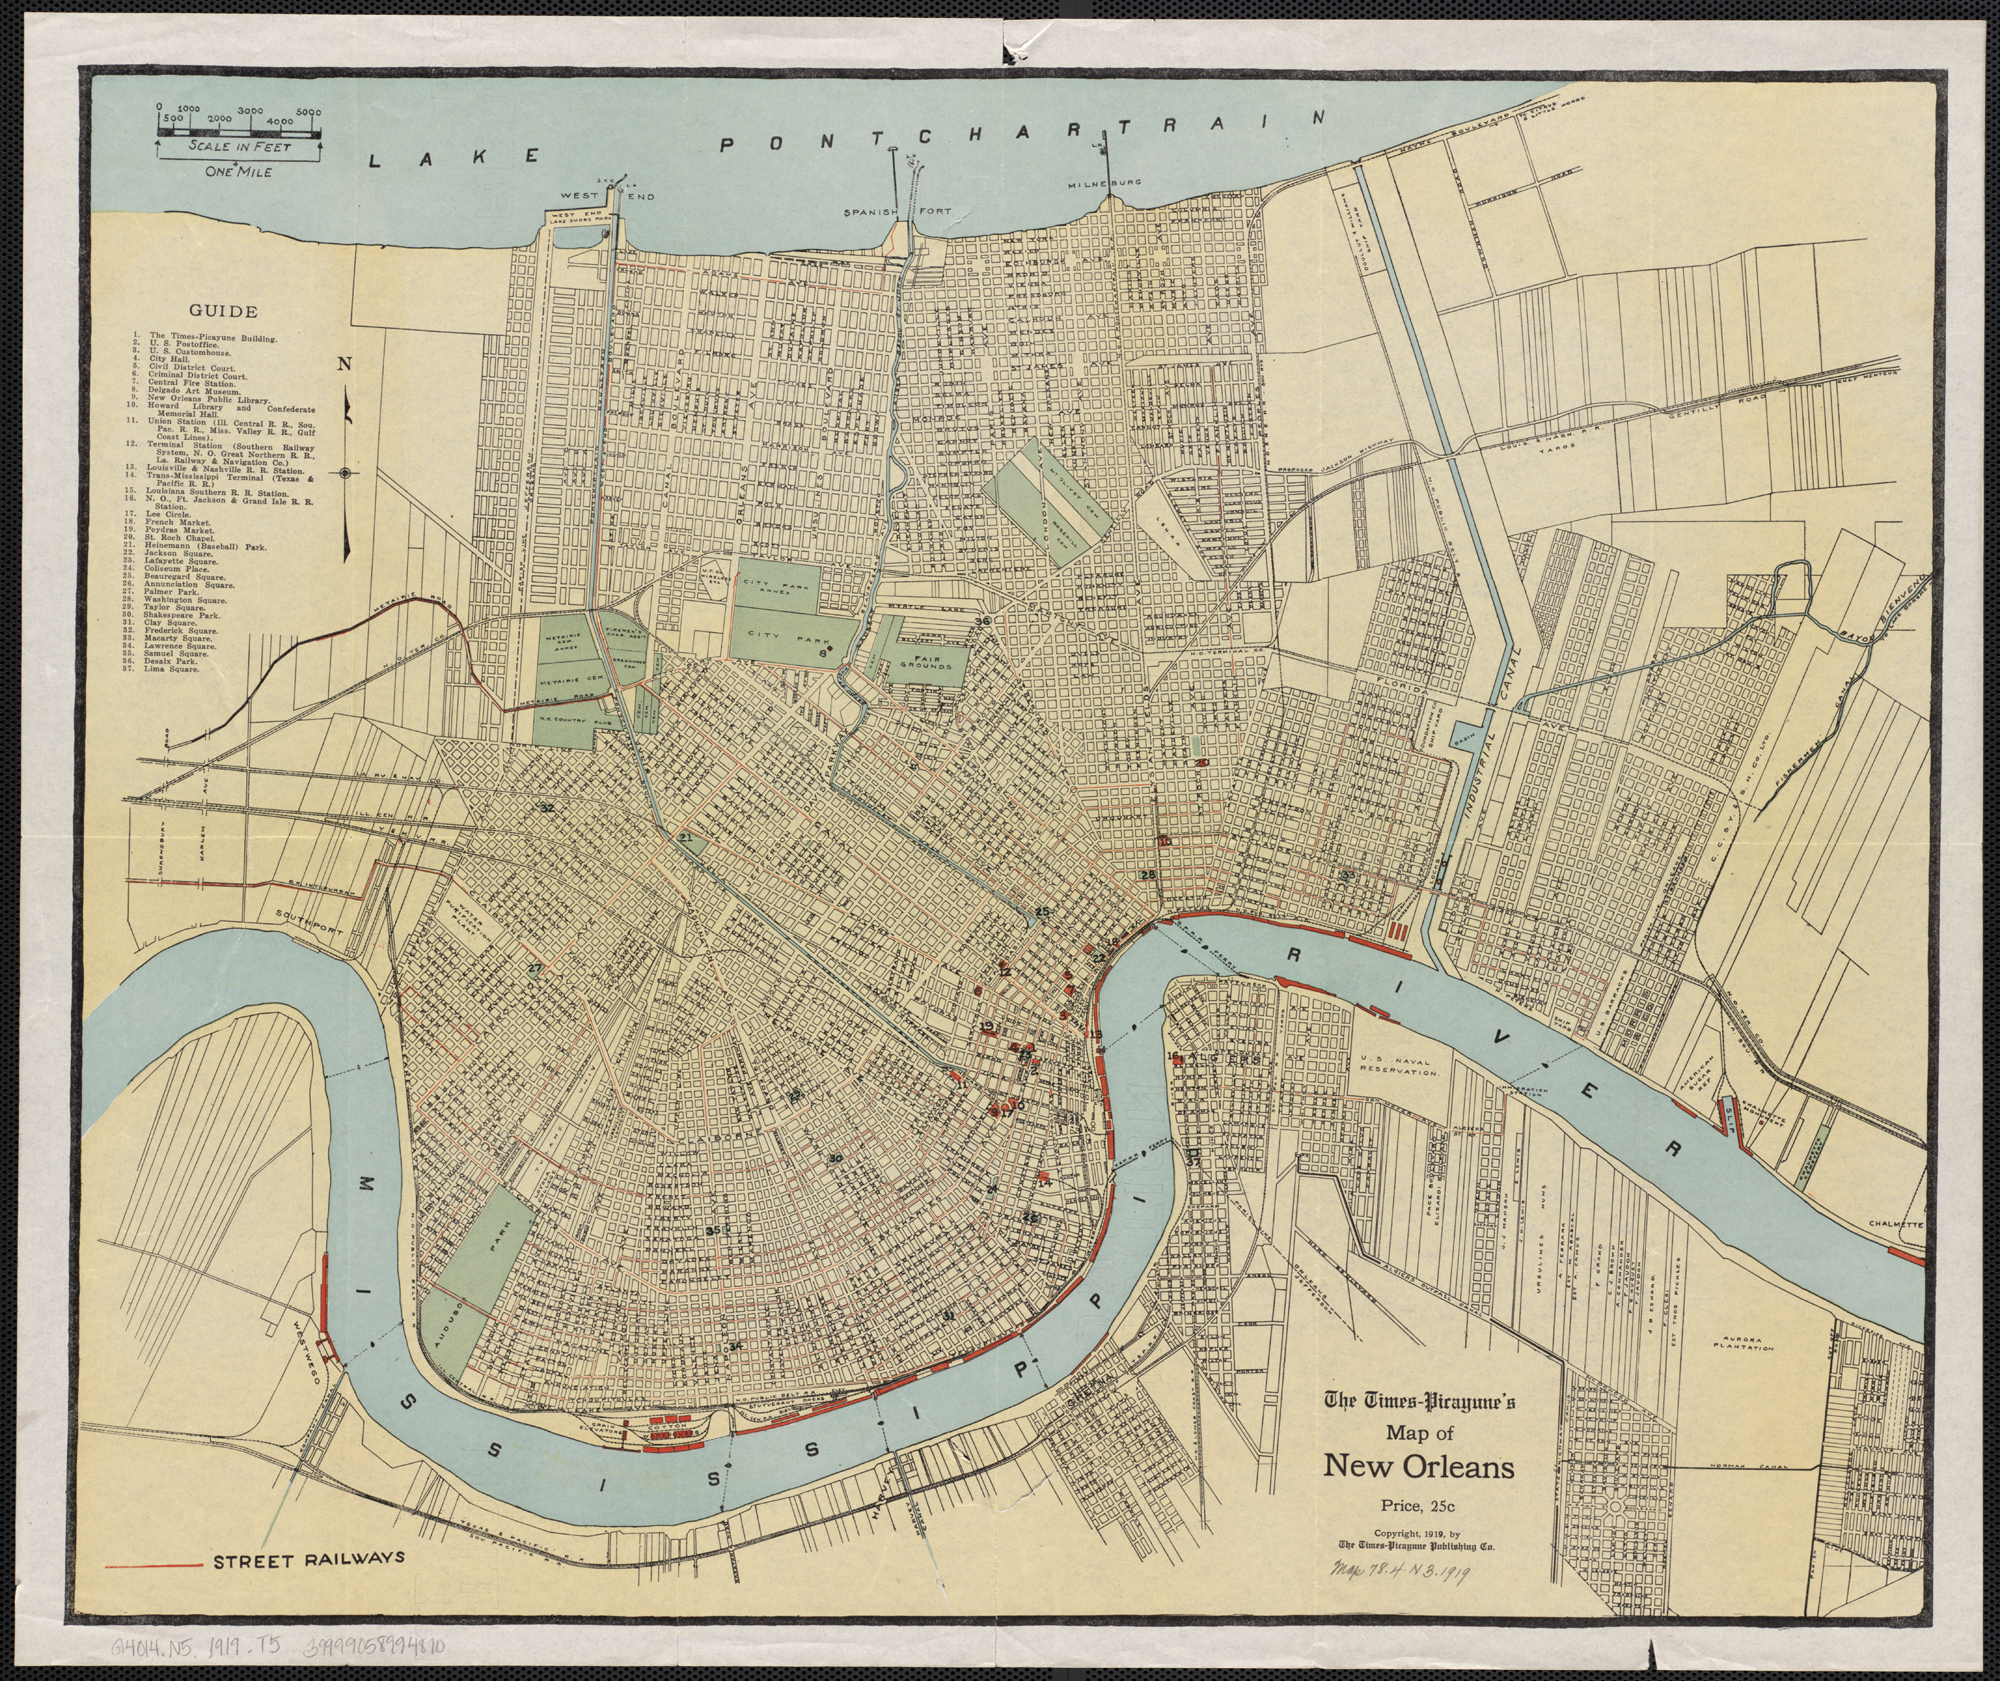 File:Times Picayune map of New Orleans 1919.   Wikimedia Commons